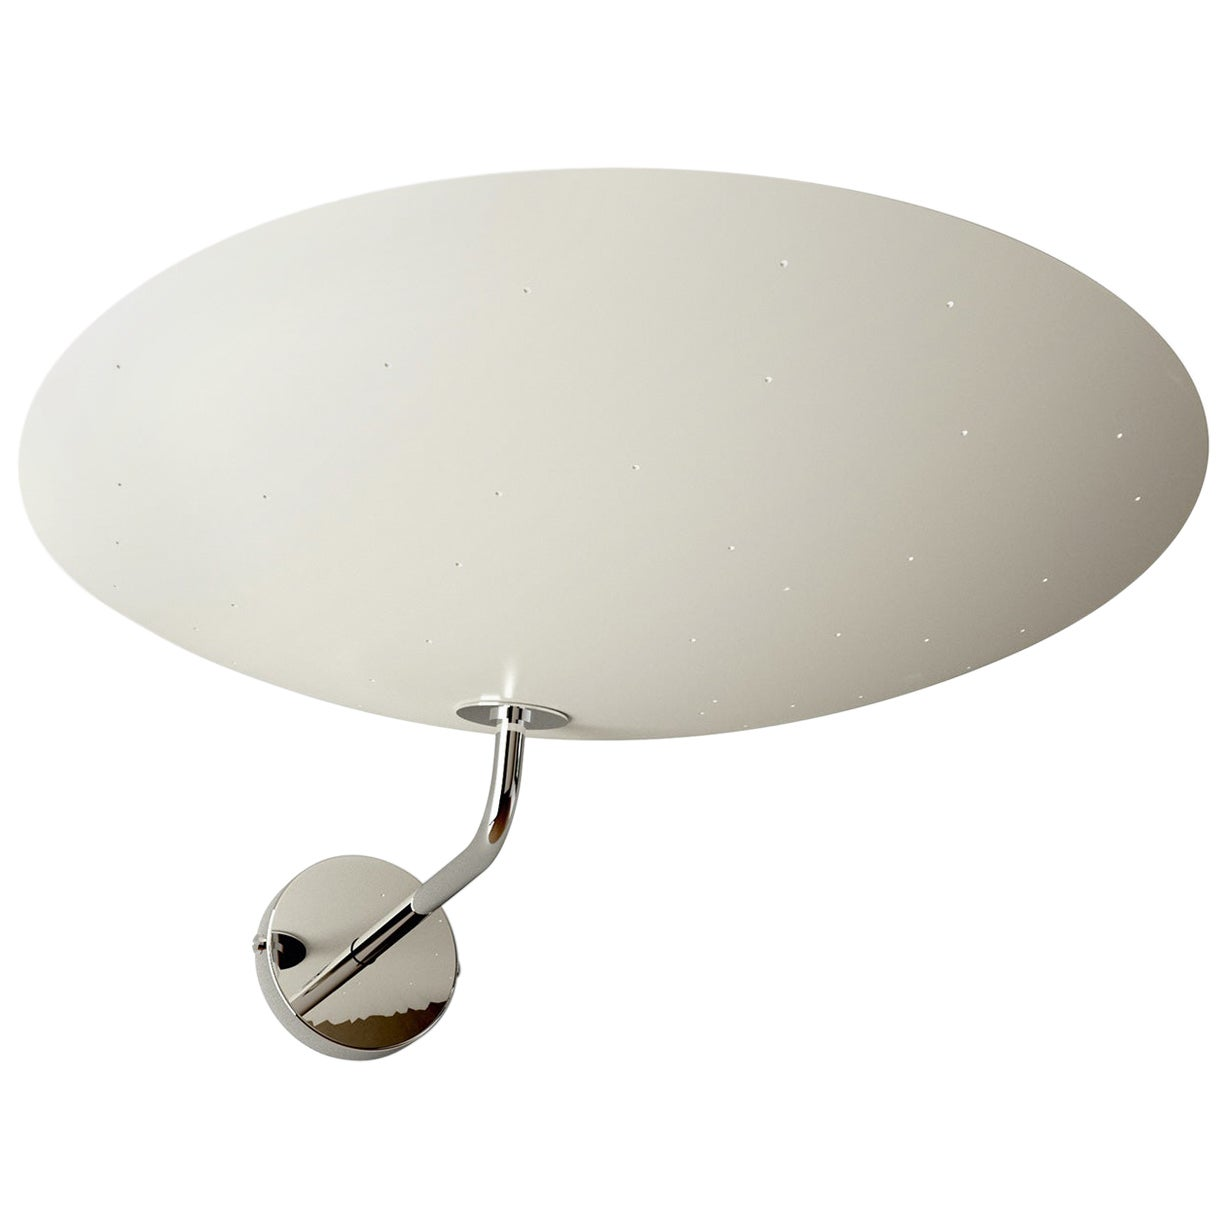 Pierre Disderot Model #2059 Large Perforated Wall Lamp in White and Chrome